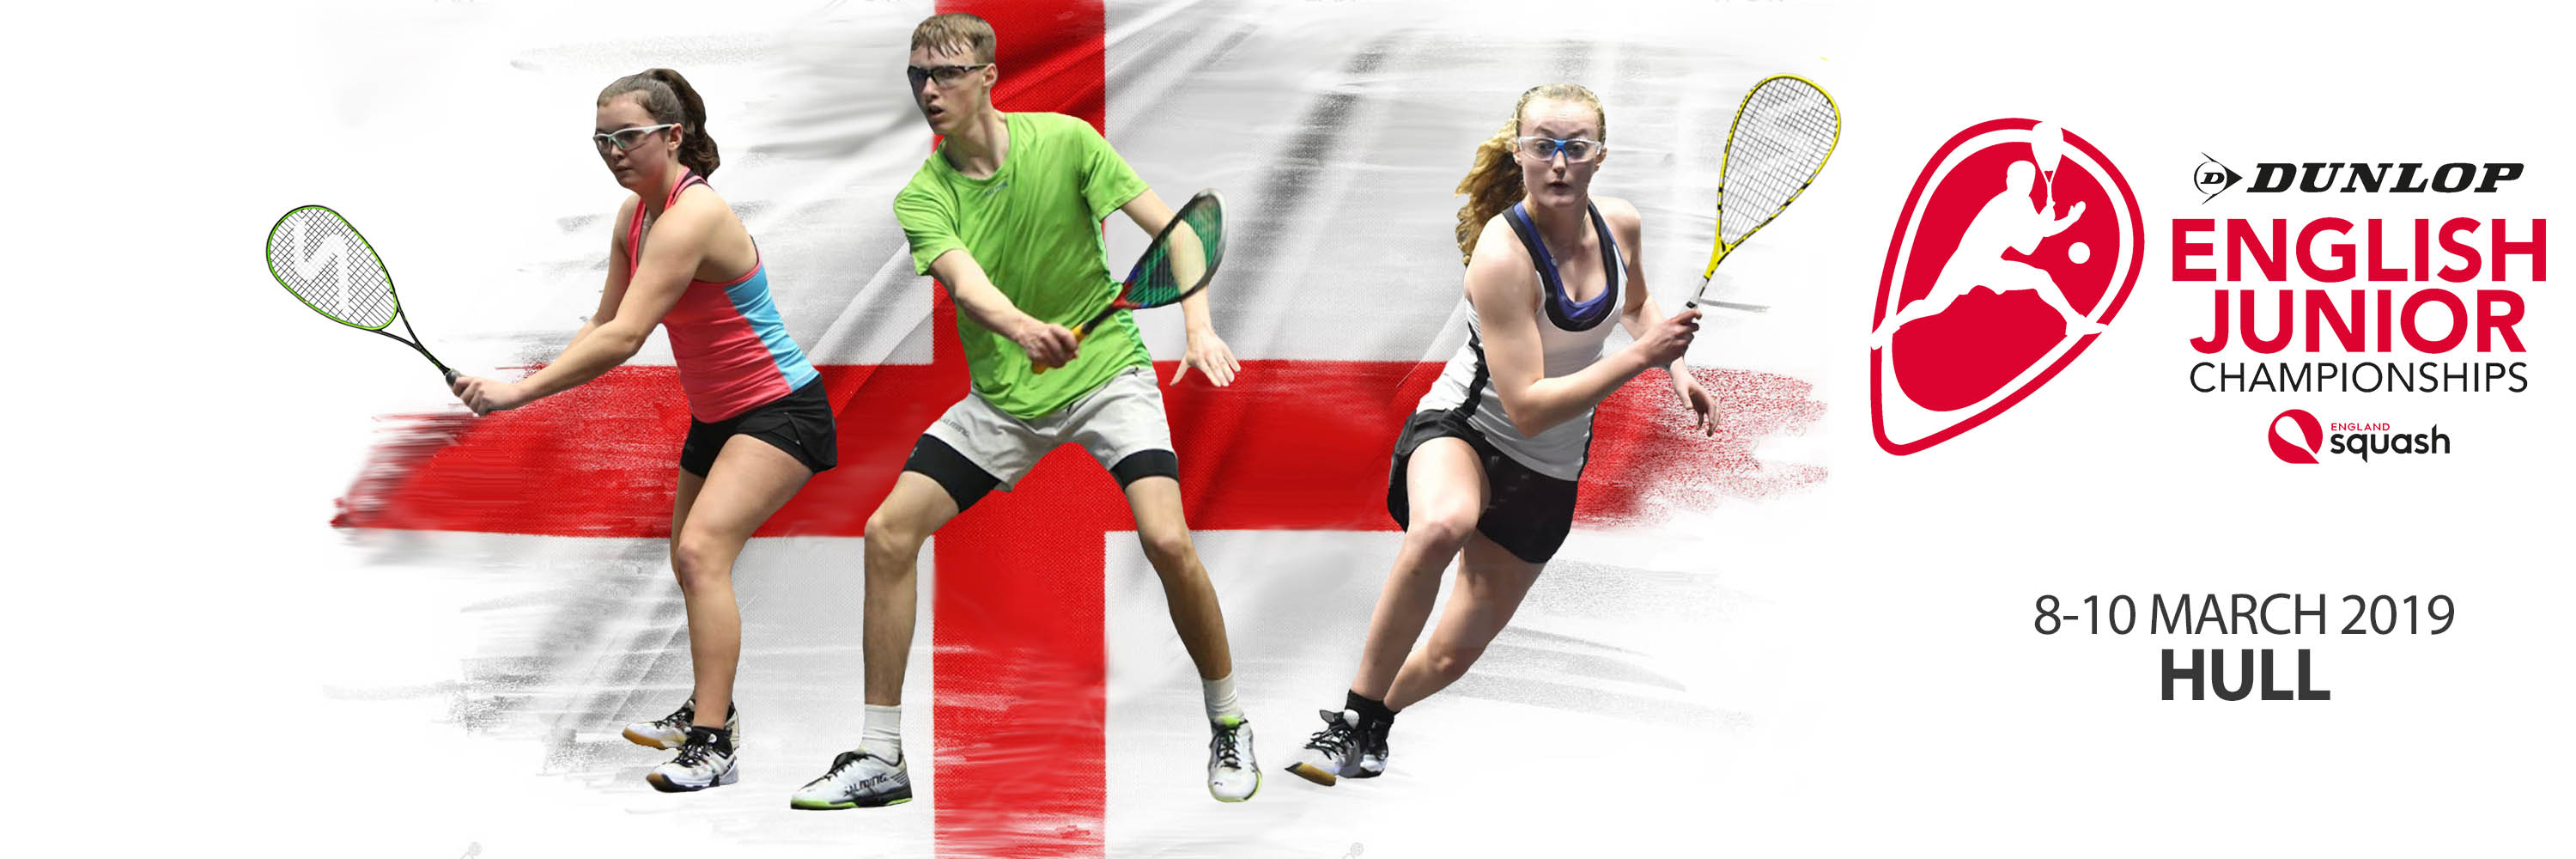 Dunlop English Junior Championships 2019